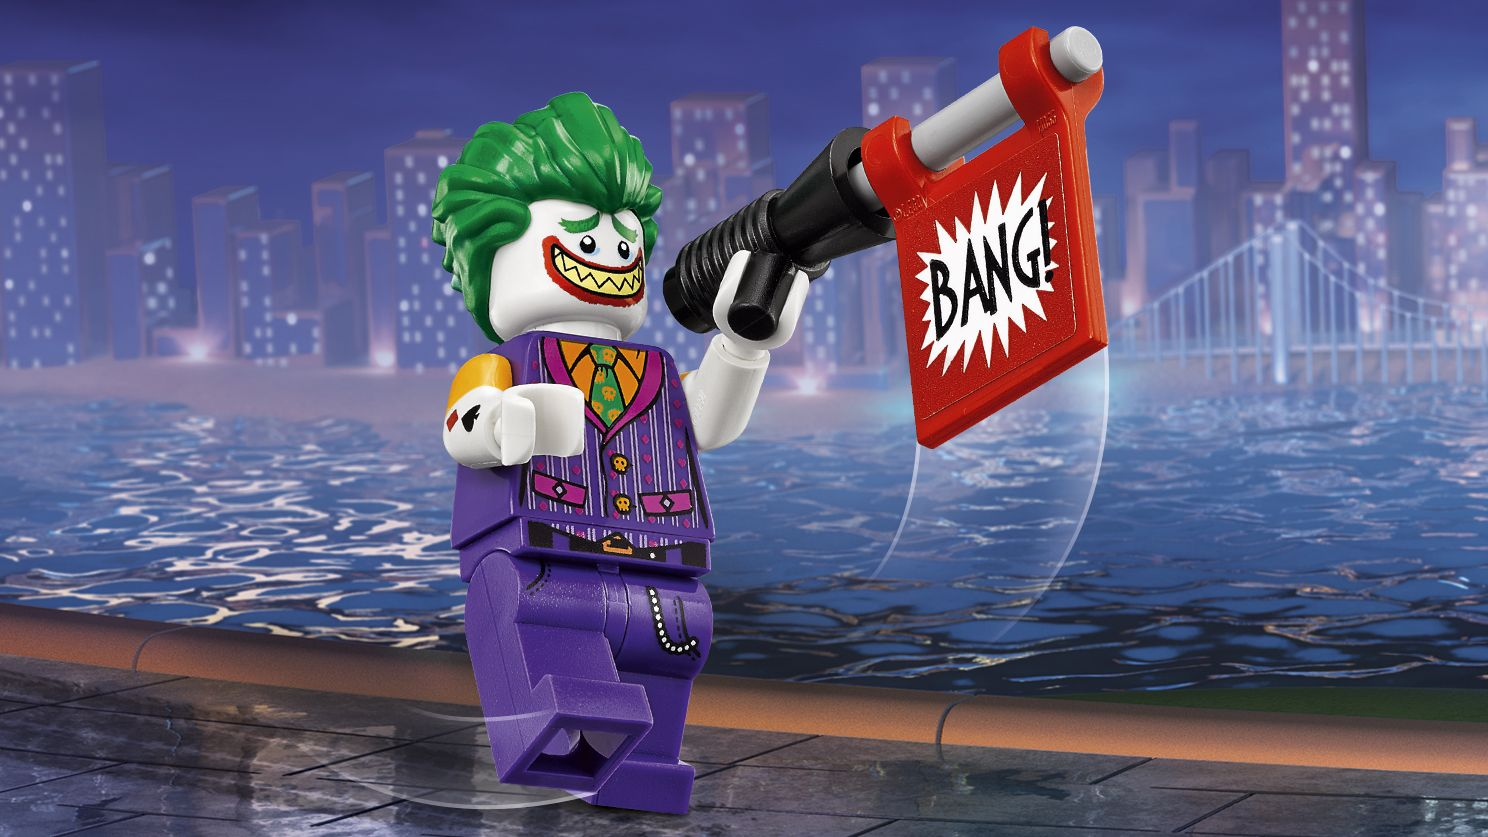 The Joker The Lego Batman Movie Characters Lego Com Batmanmovie Lego Com Lego Batman Movie Lego Batman Batman Movie